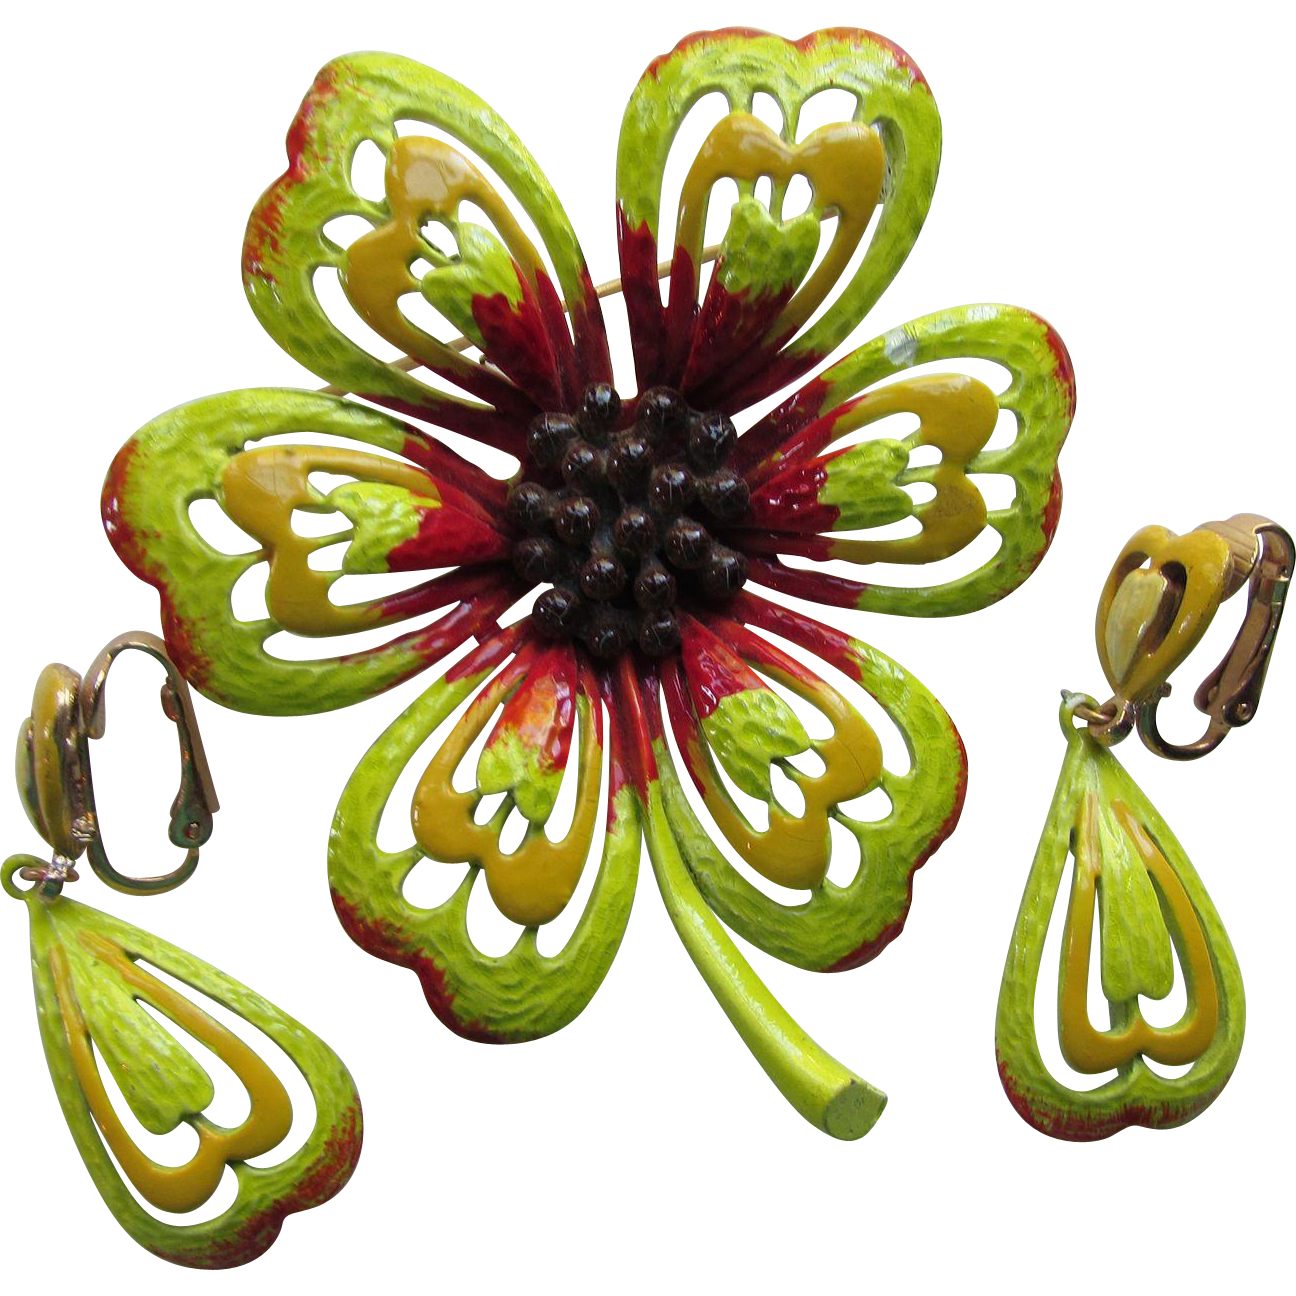 Flower Power Pin and Earrings by Hedy in Lime Green, Mustard and Red